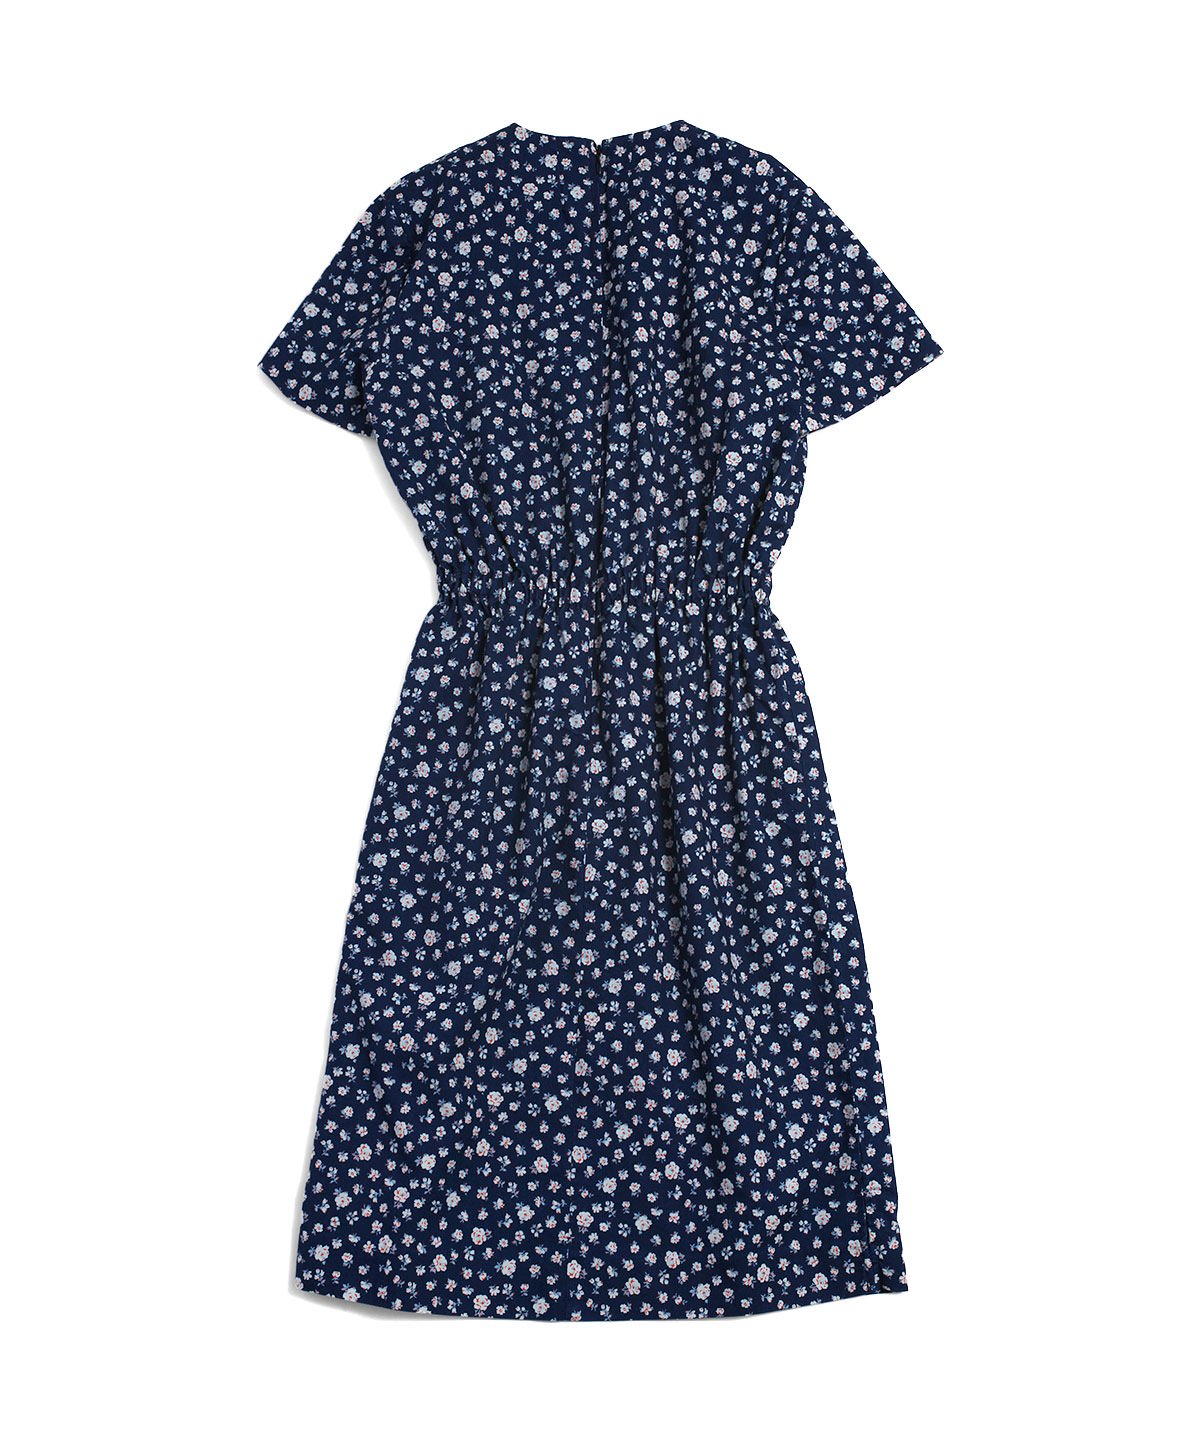 HOMESTEAD INDIGO DRESS